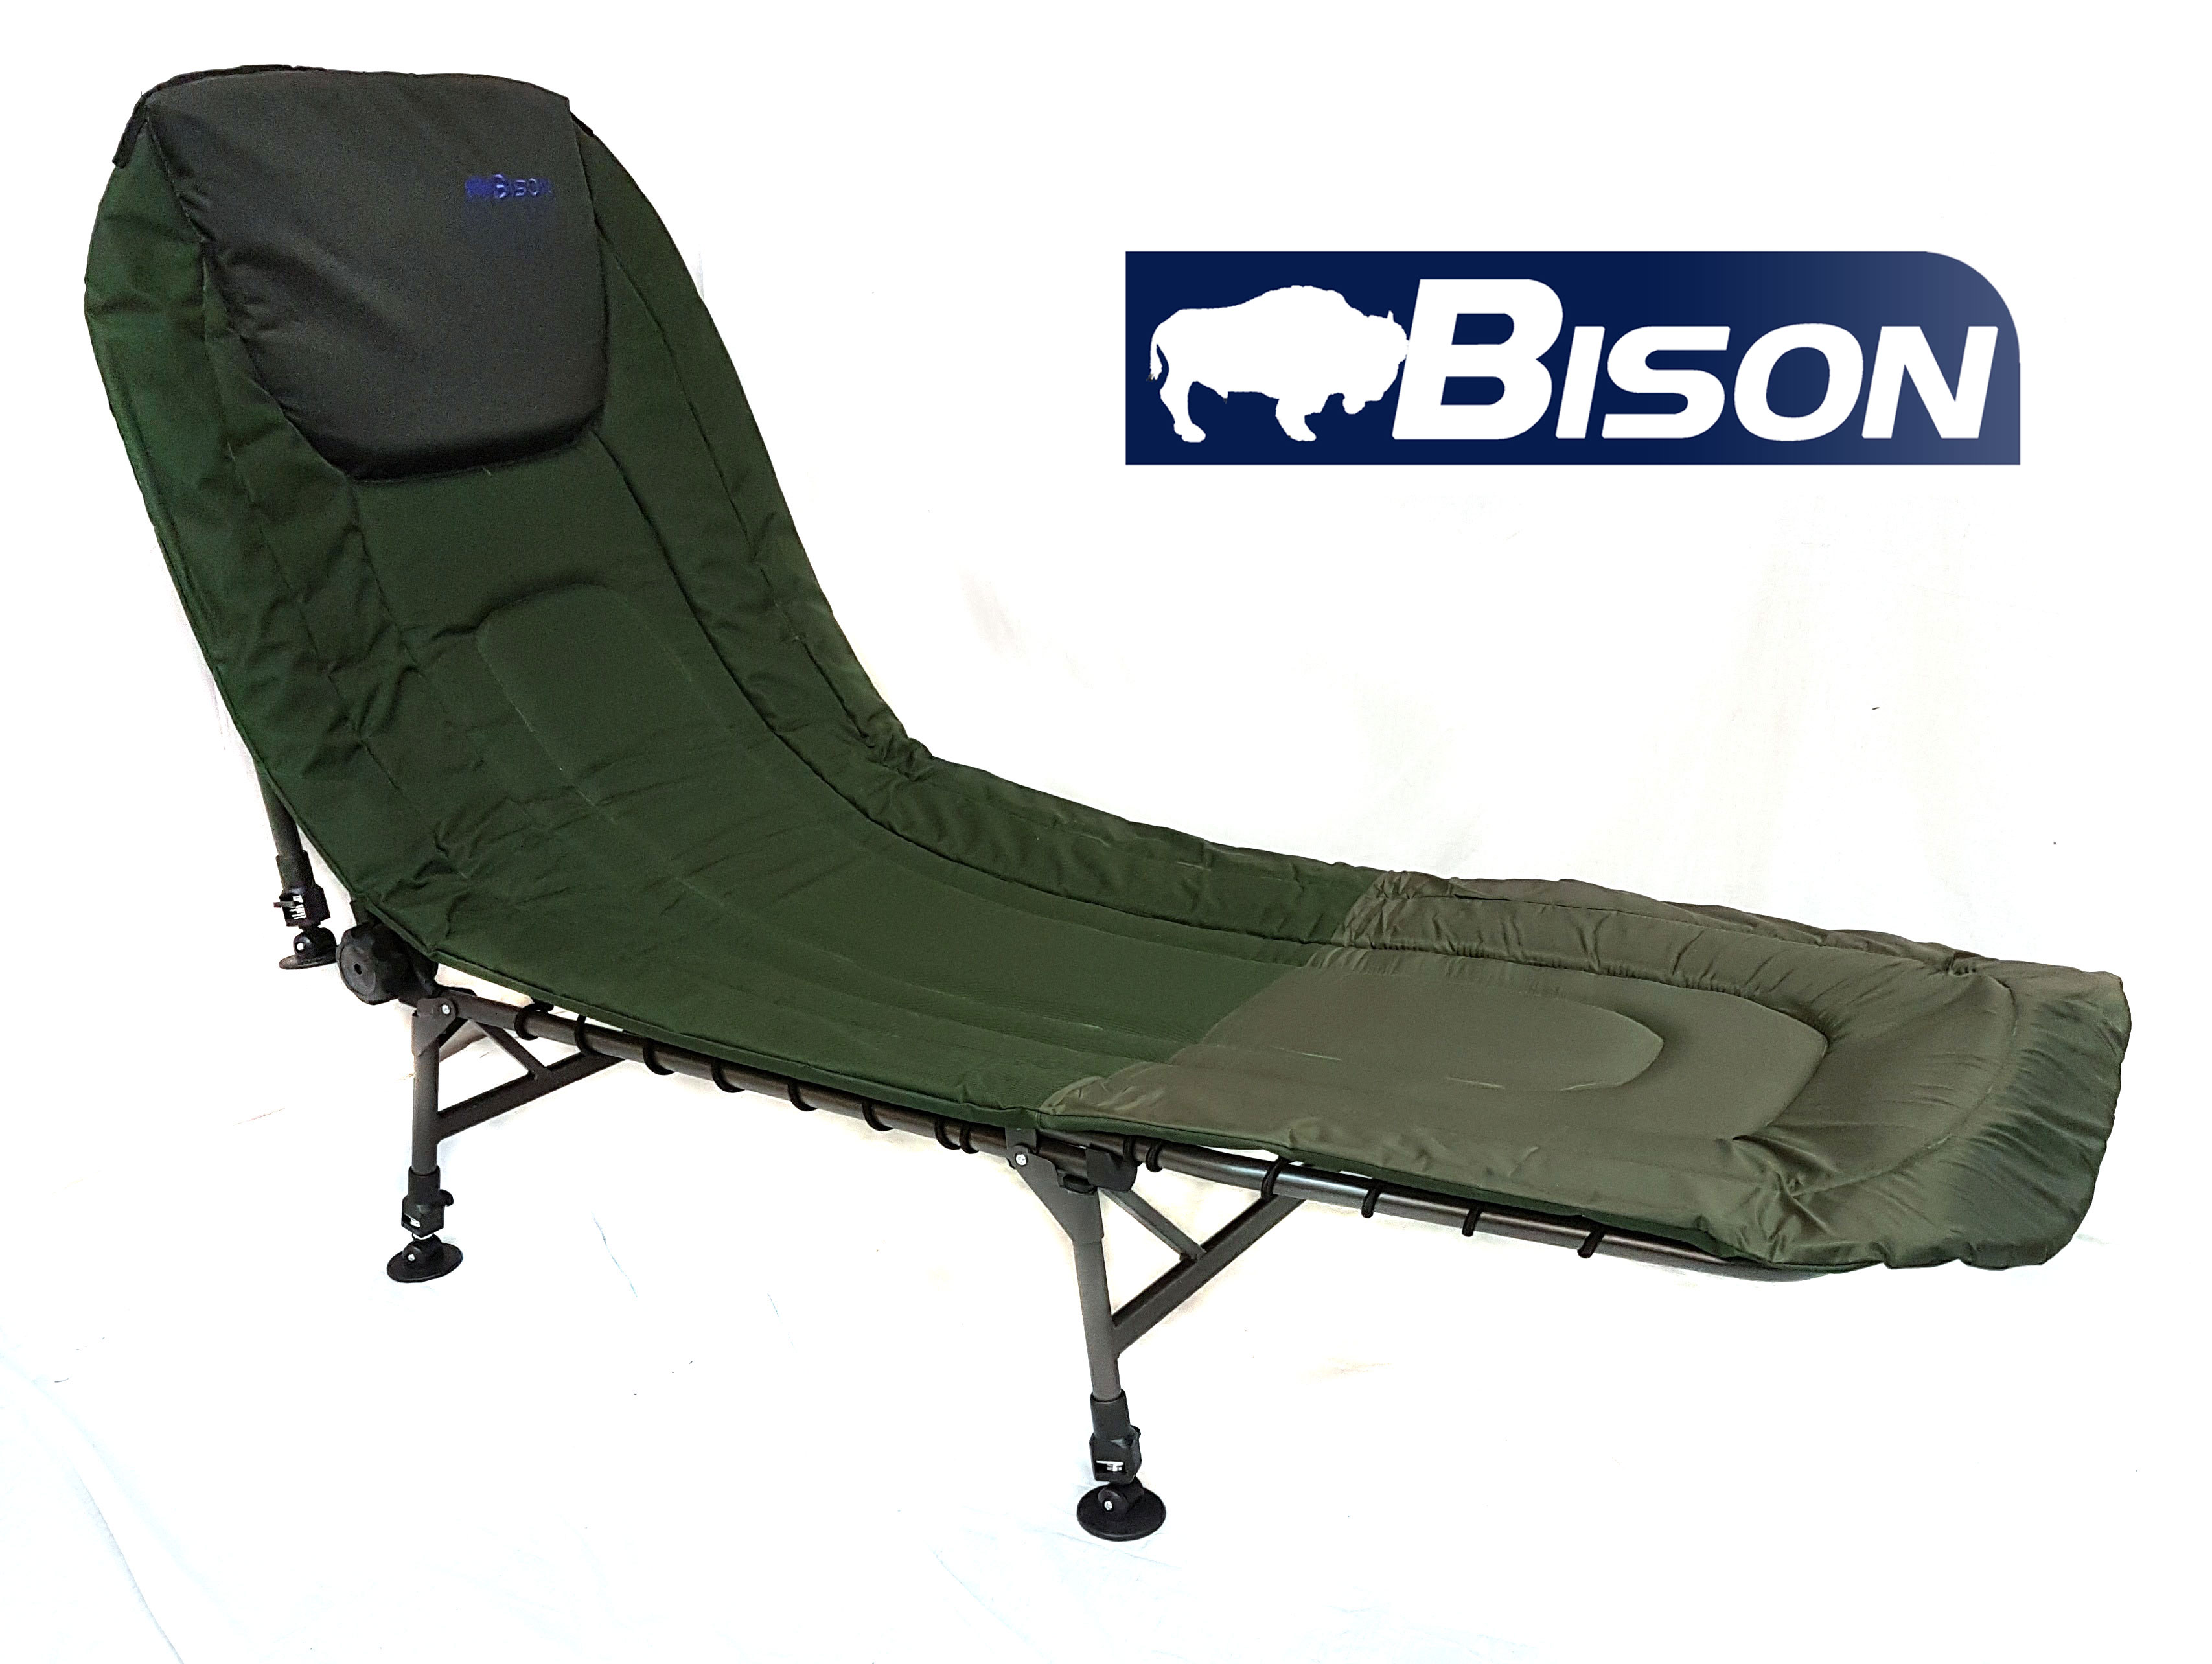 fishing bed chair used bar height bison carp bedchair